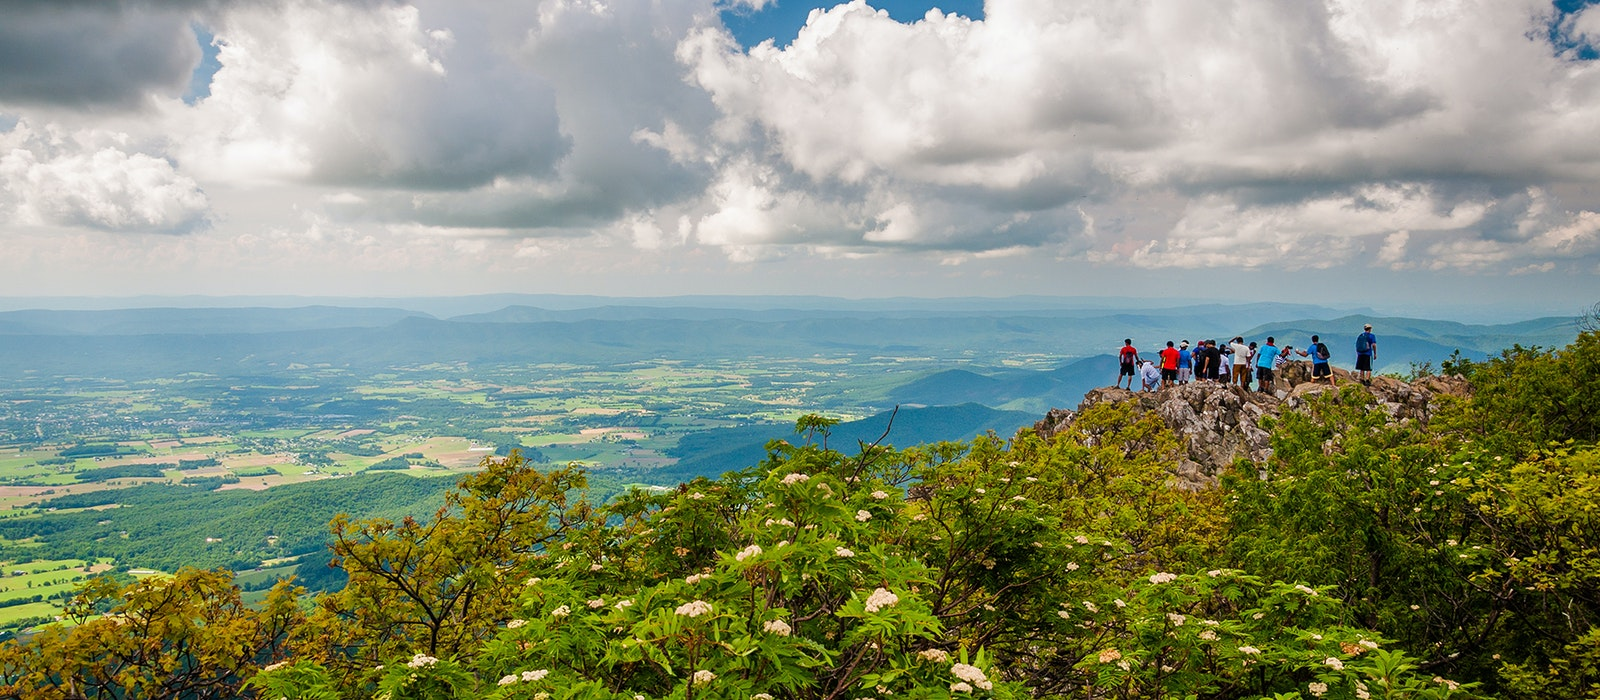 The Appalachian Mountains run from the southern edge of Shenandoah National Park to the Great Smoky Mountains.